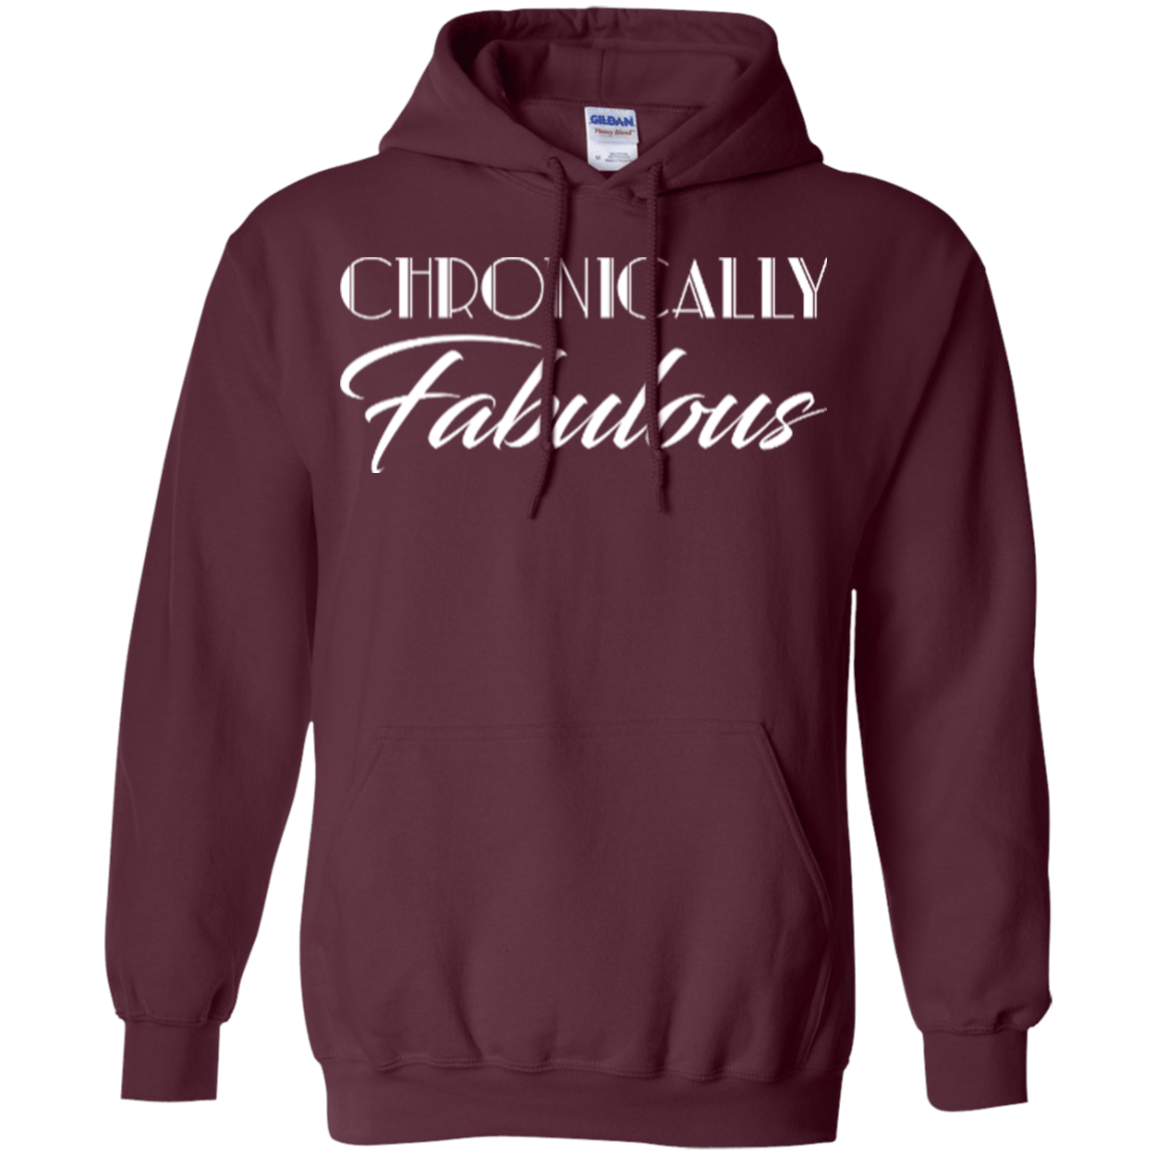 Chronically Fabulous Pullover Hoodie 8 oz - The Unchargeables